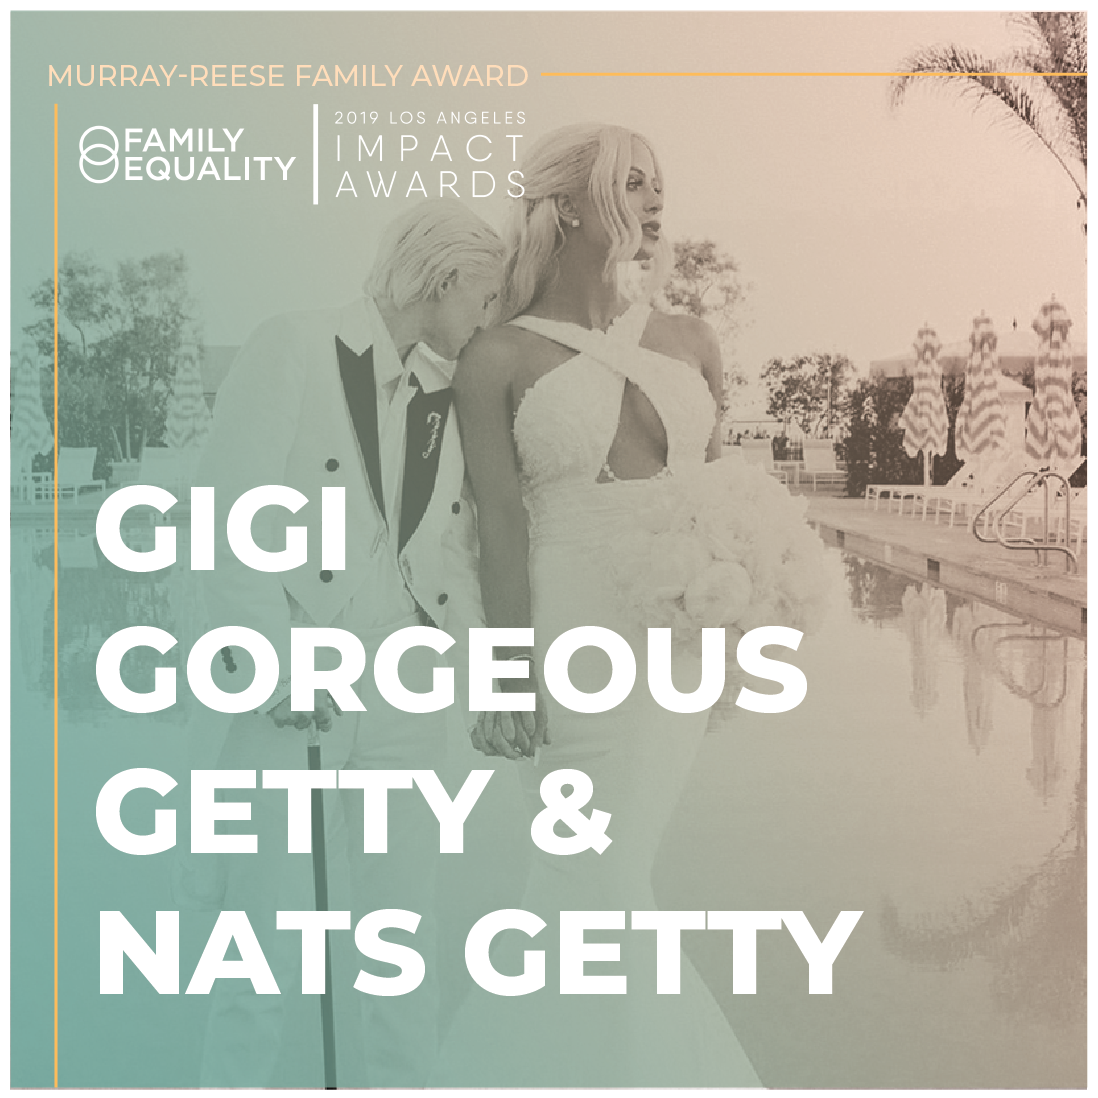 Sample caption: It's about time we celebrated people who make #LGBTQ lives better. Can't wait to join  @familyequality  in honoring  @gigigorgeous  and  @NatsGetty  at the #LAImpactAwards. laimpactawards.com